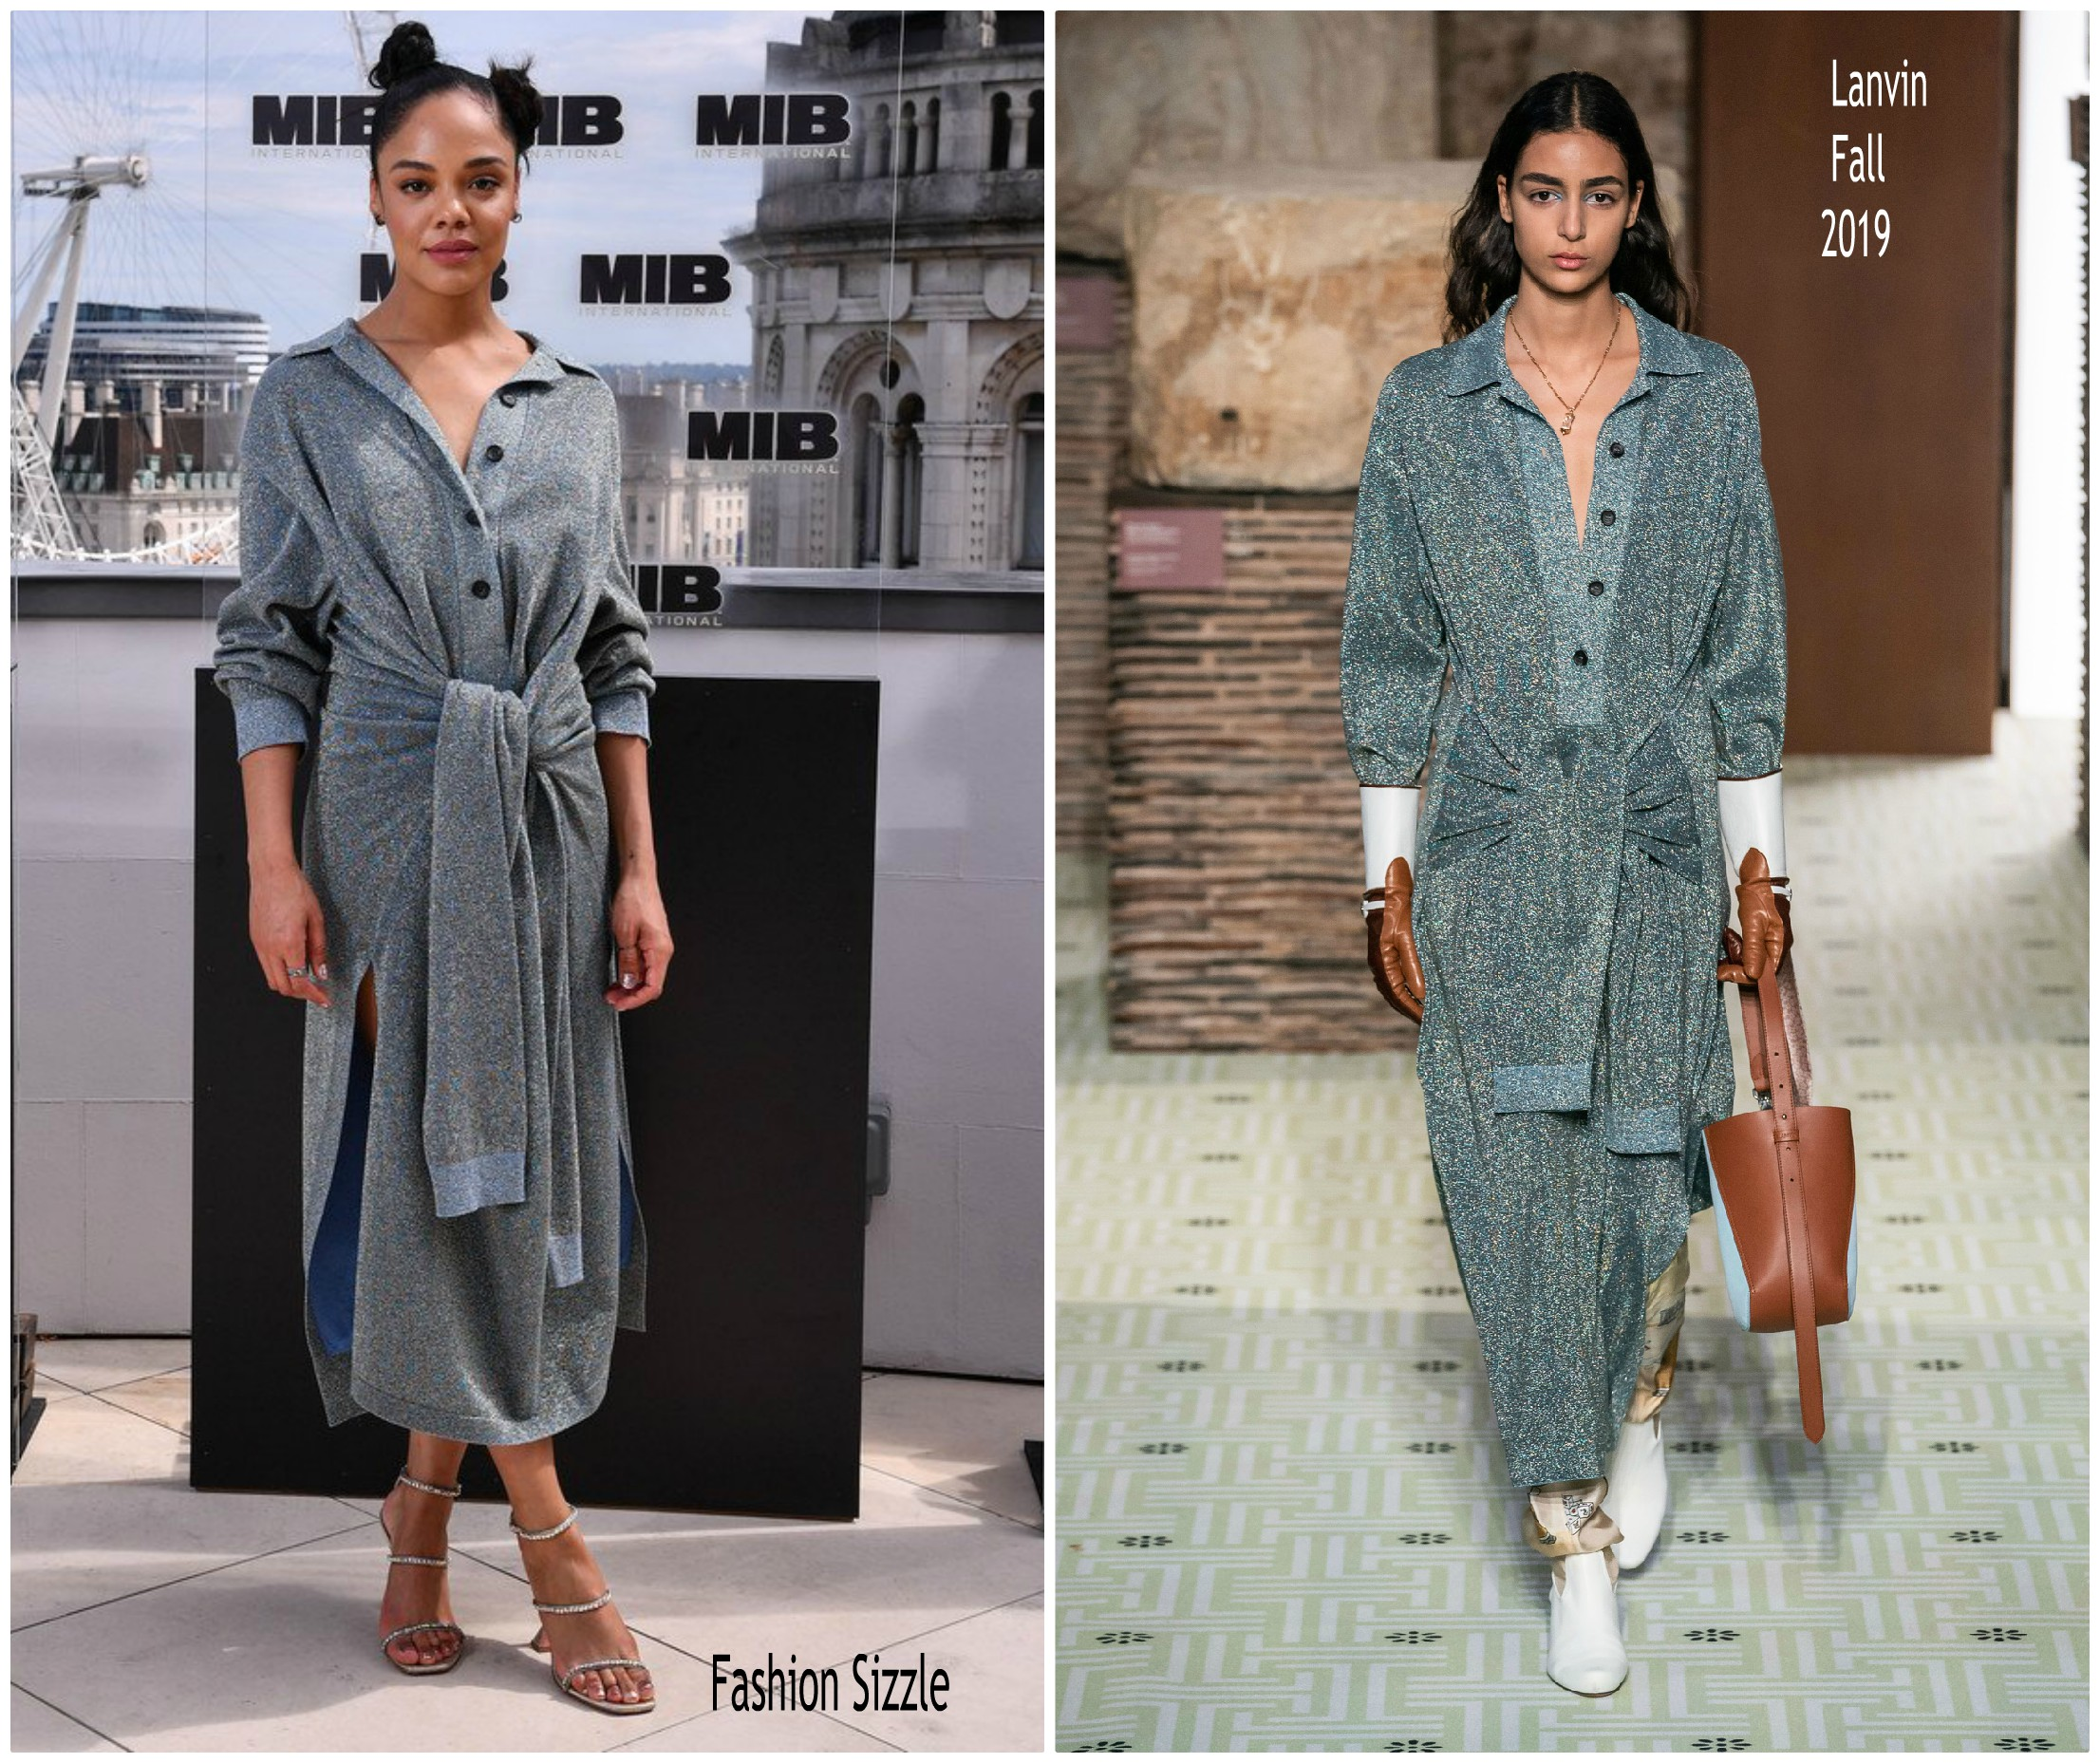 tessa-thompson-in-lanvin–men-in-black-international-london-photocall